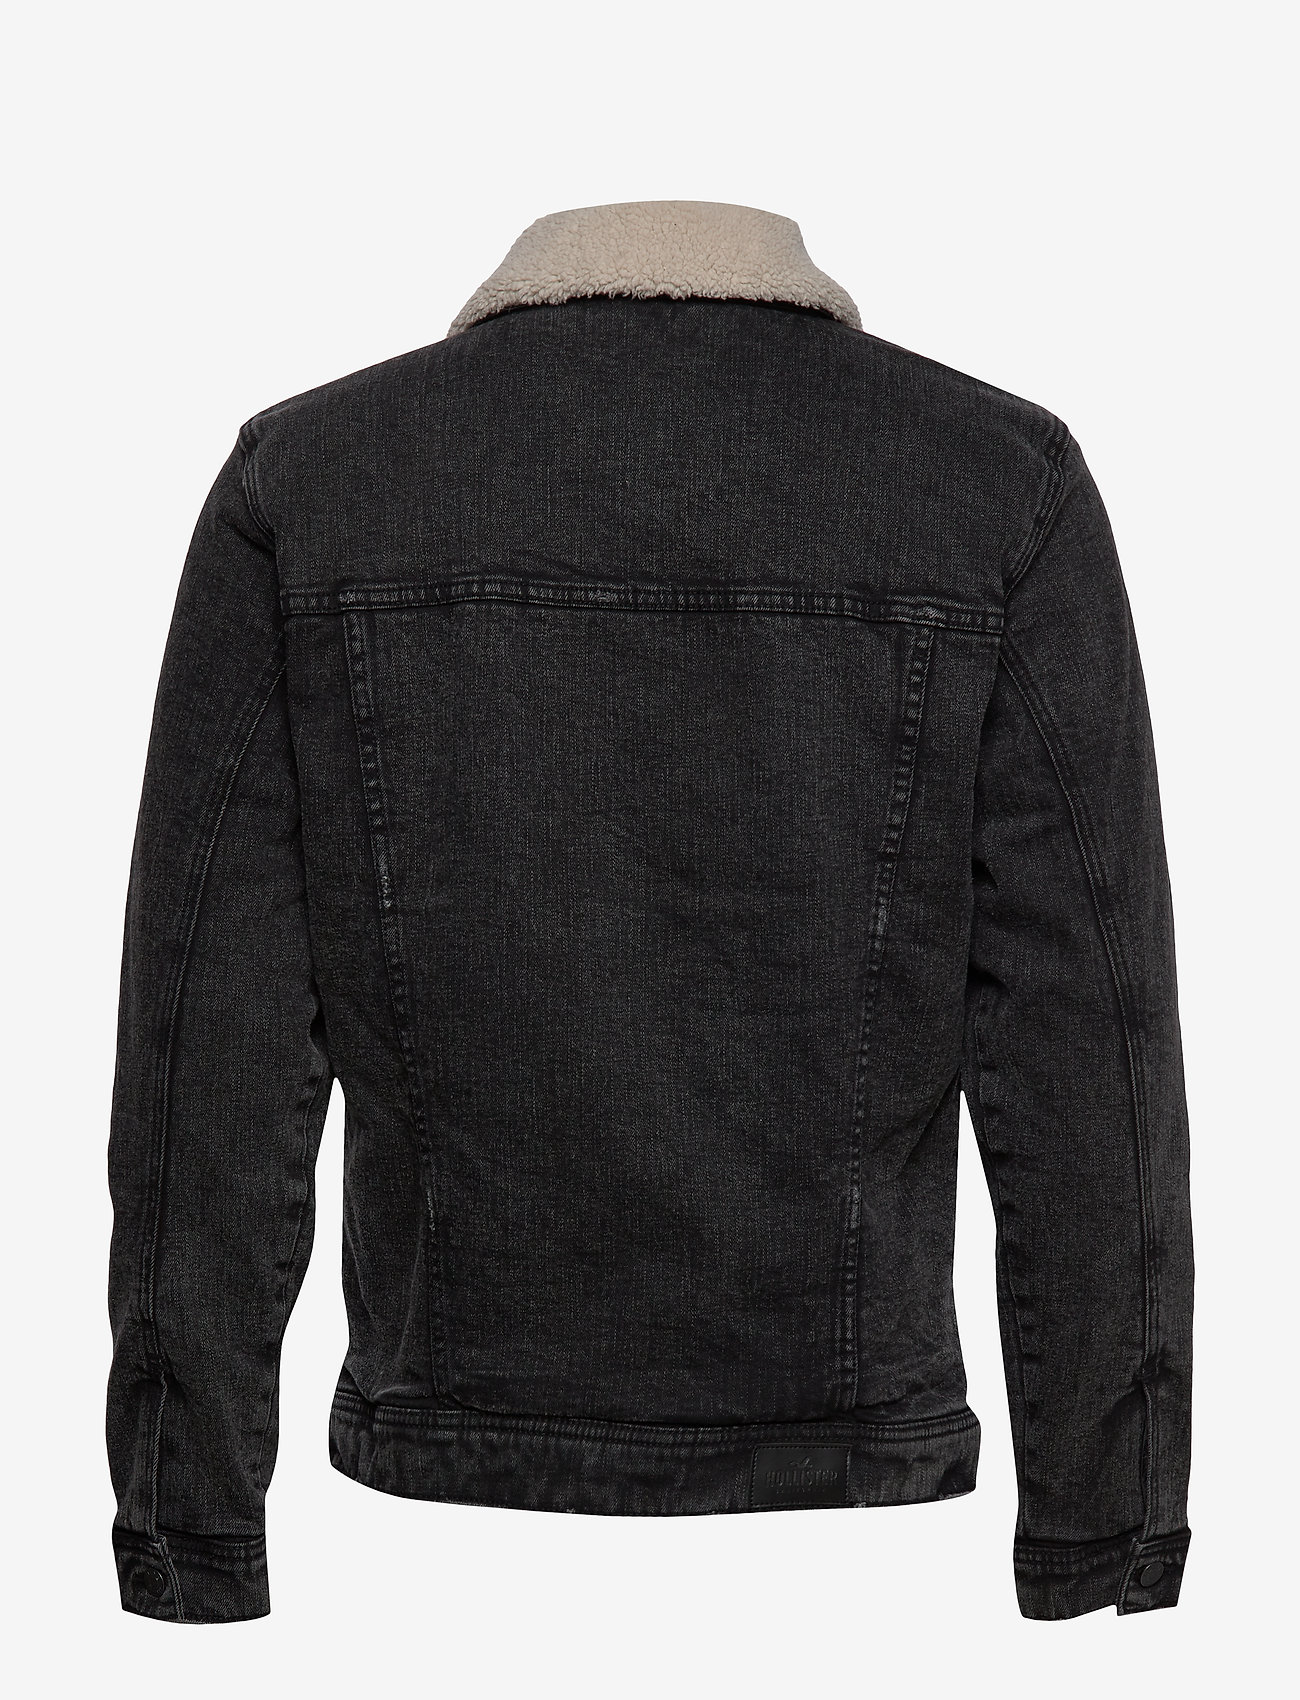 Sherpa Lined Trucker Black (Black Destroy) (69.30 €) - Hollister YvctkWP4